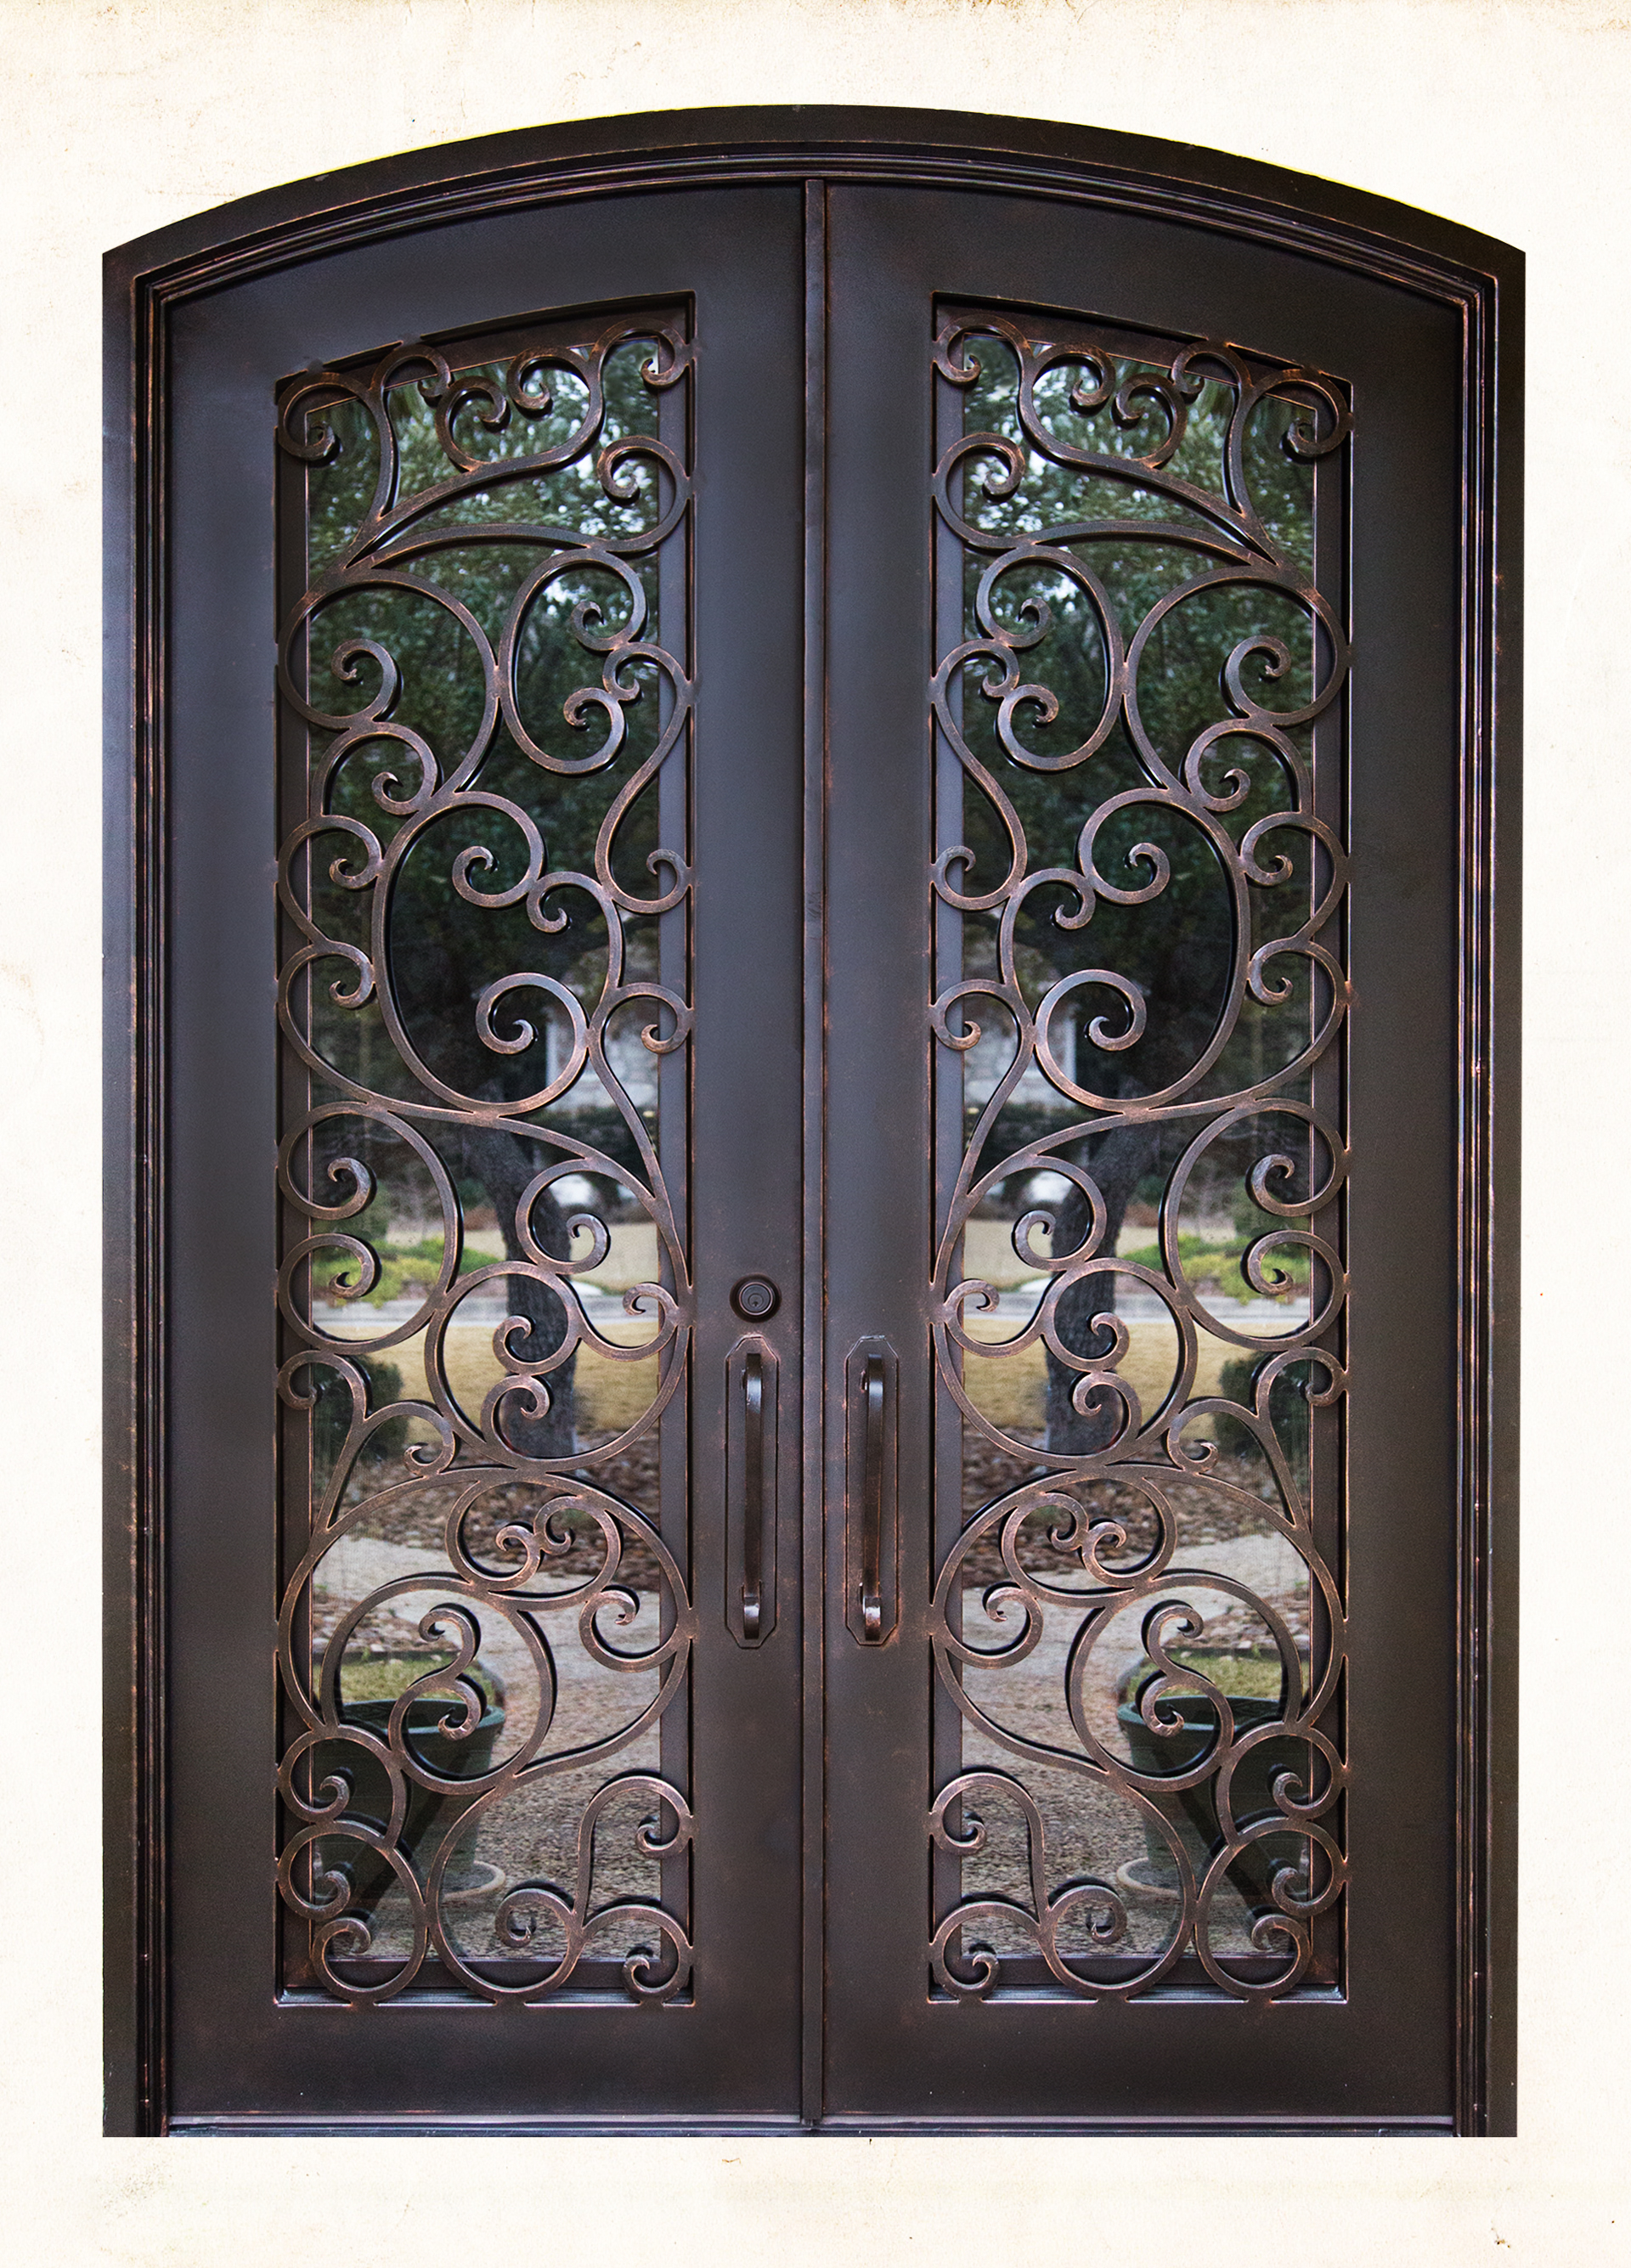 2670 #916A3A Colonial Iron Doors Door Supplier San Antonio TX 78216 picture/photo Entry Doors San Antonio 38991920